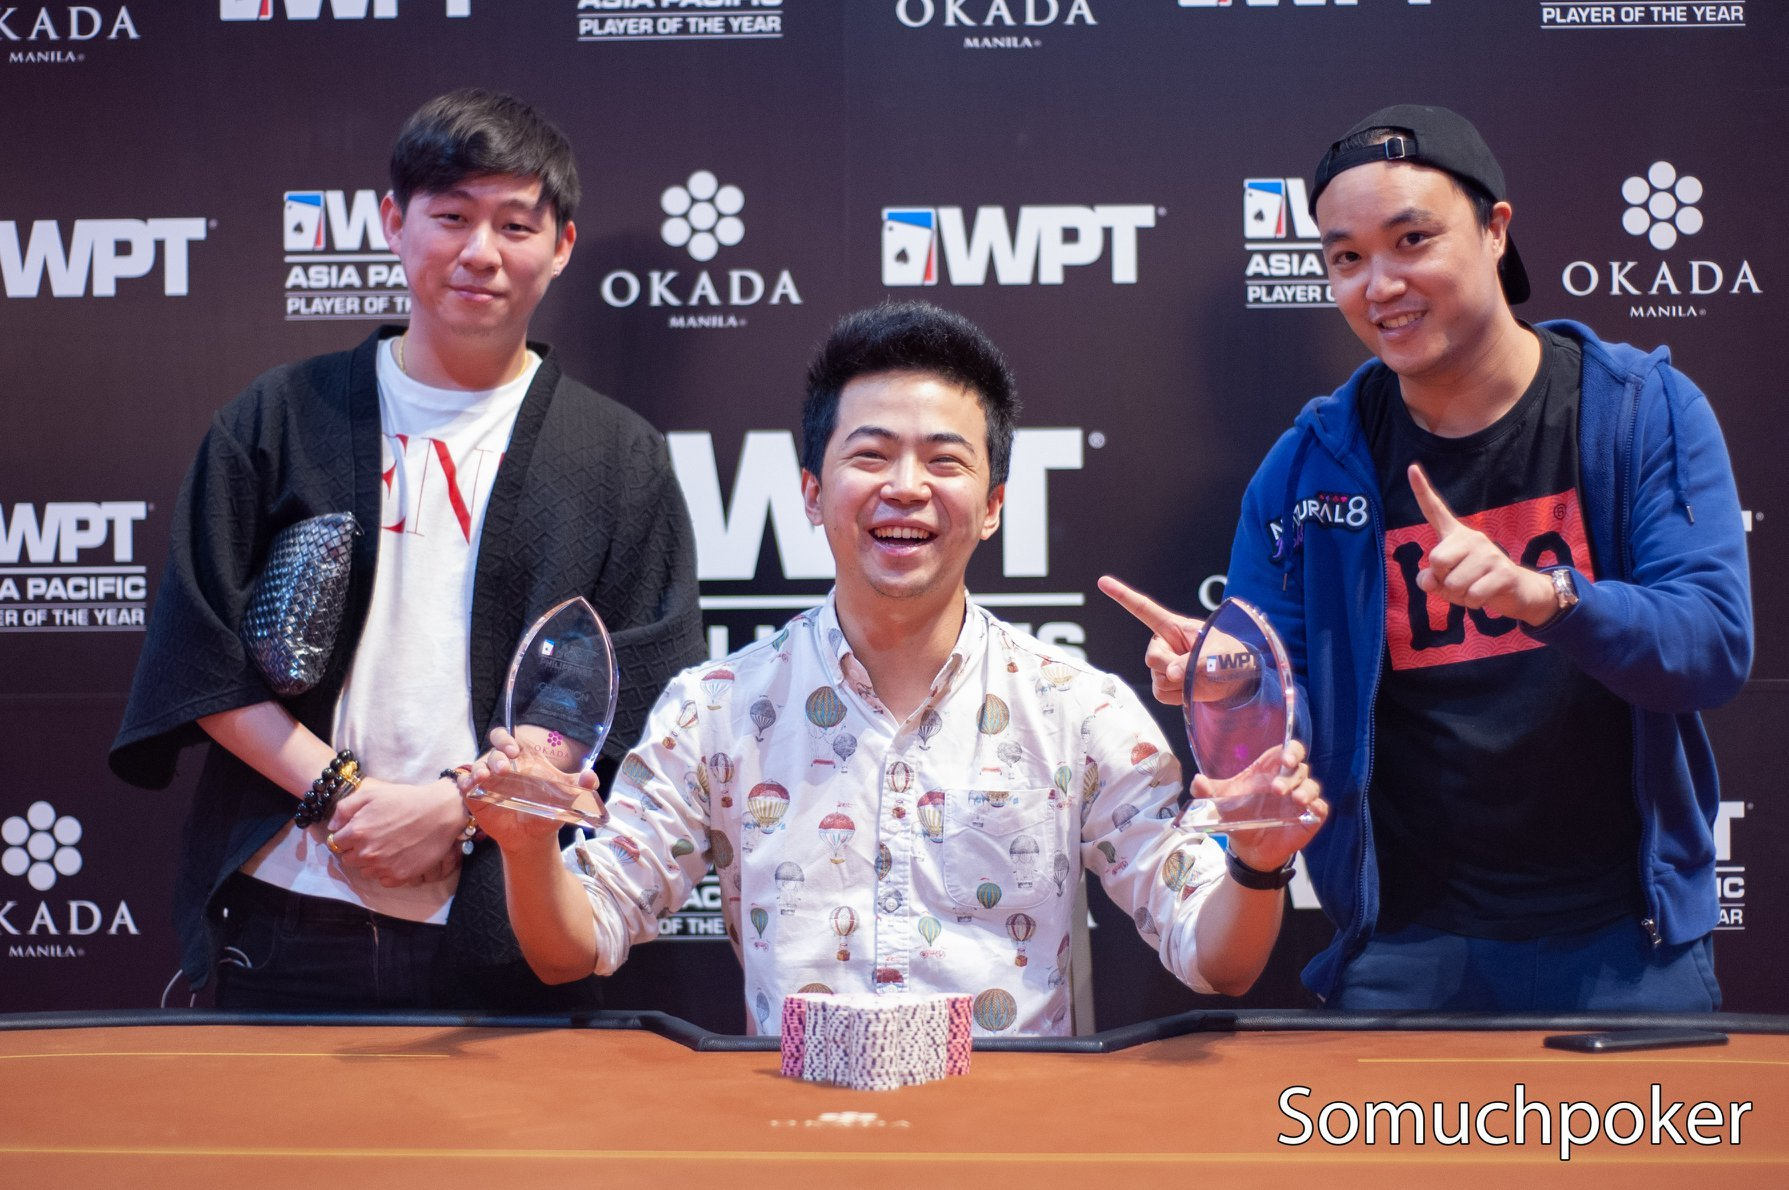 WPT Philippines: final side event winners; Pete Chen becomes only player to win two